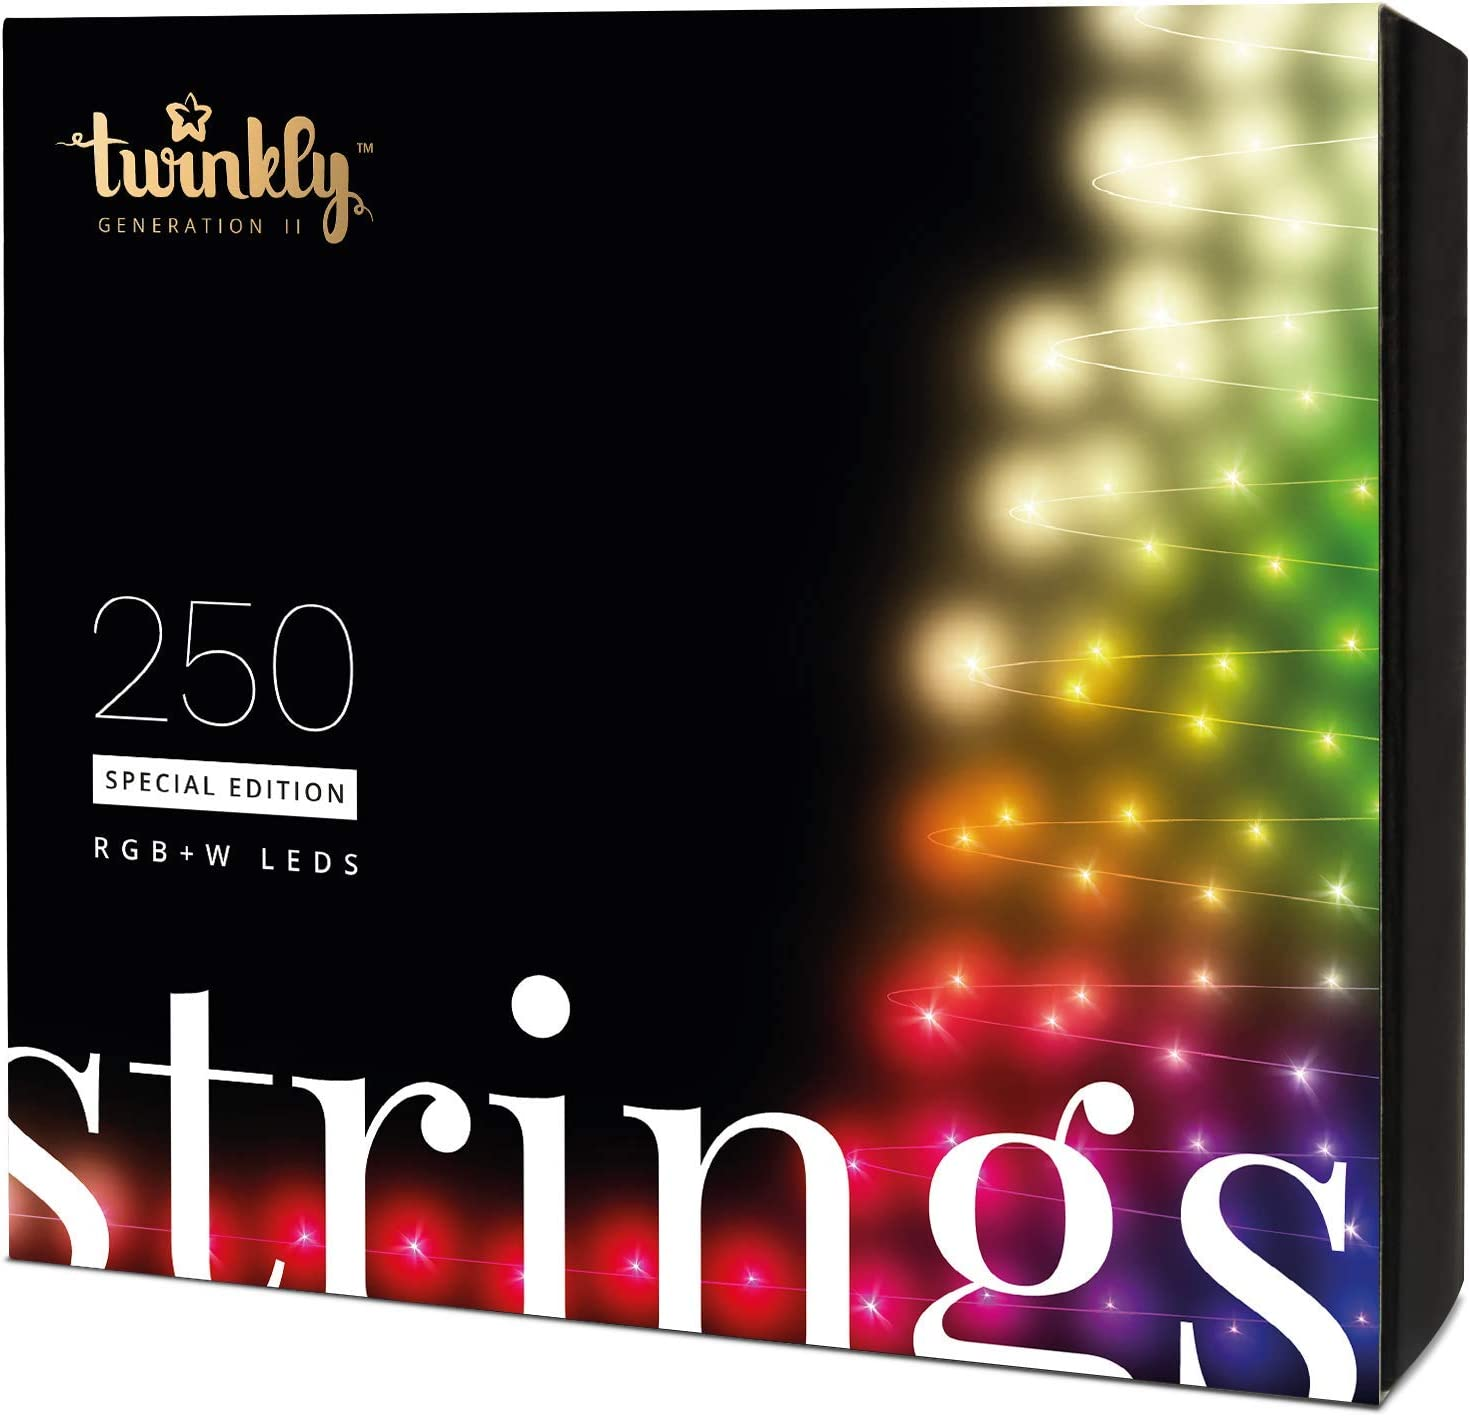 Twinkly Smart Decorations Custom LED String Lights Special Edition – App Controlled Light Strings with 250 RGB+W LED Lights – IoT Ready Customizable Lighting – Create or Download Light Displays